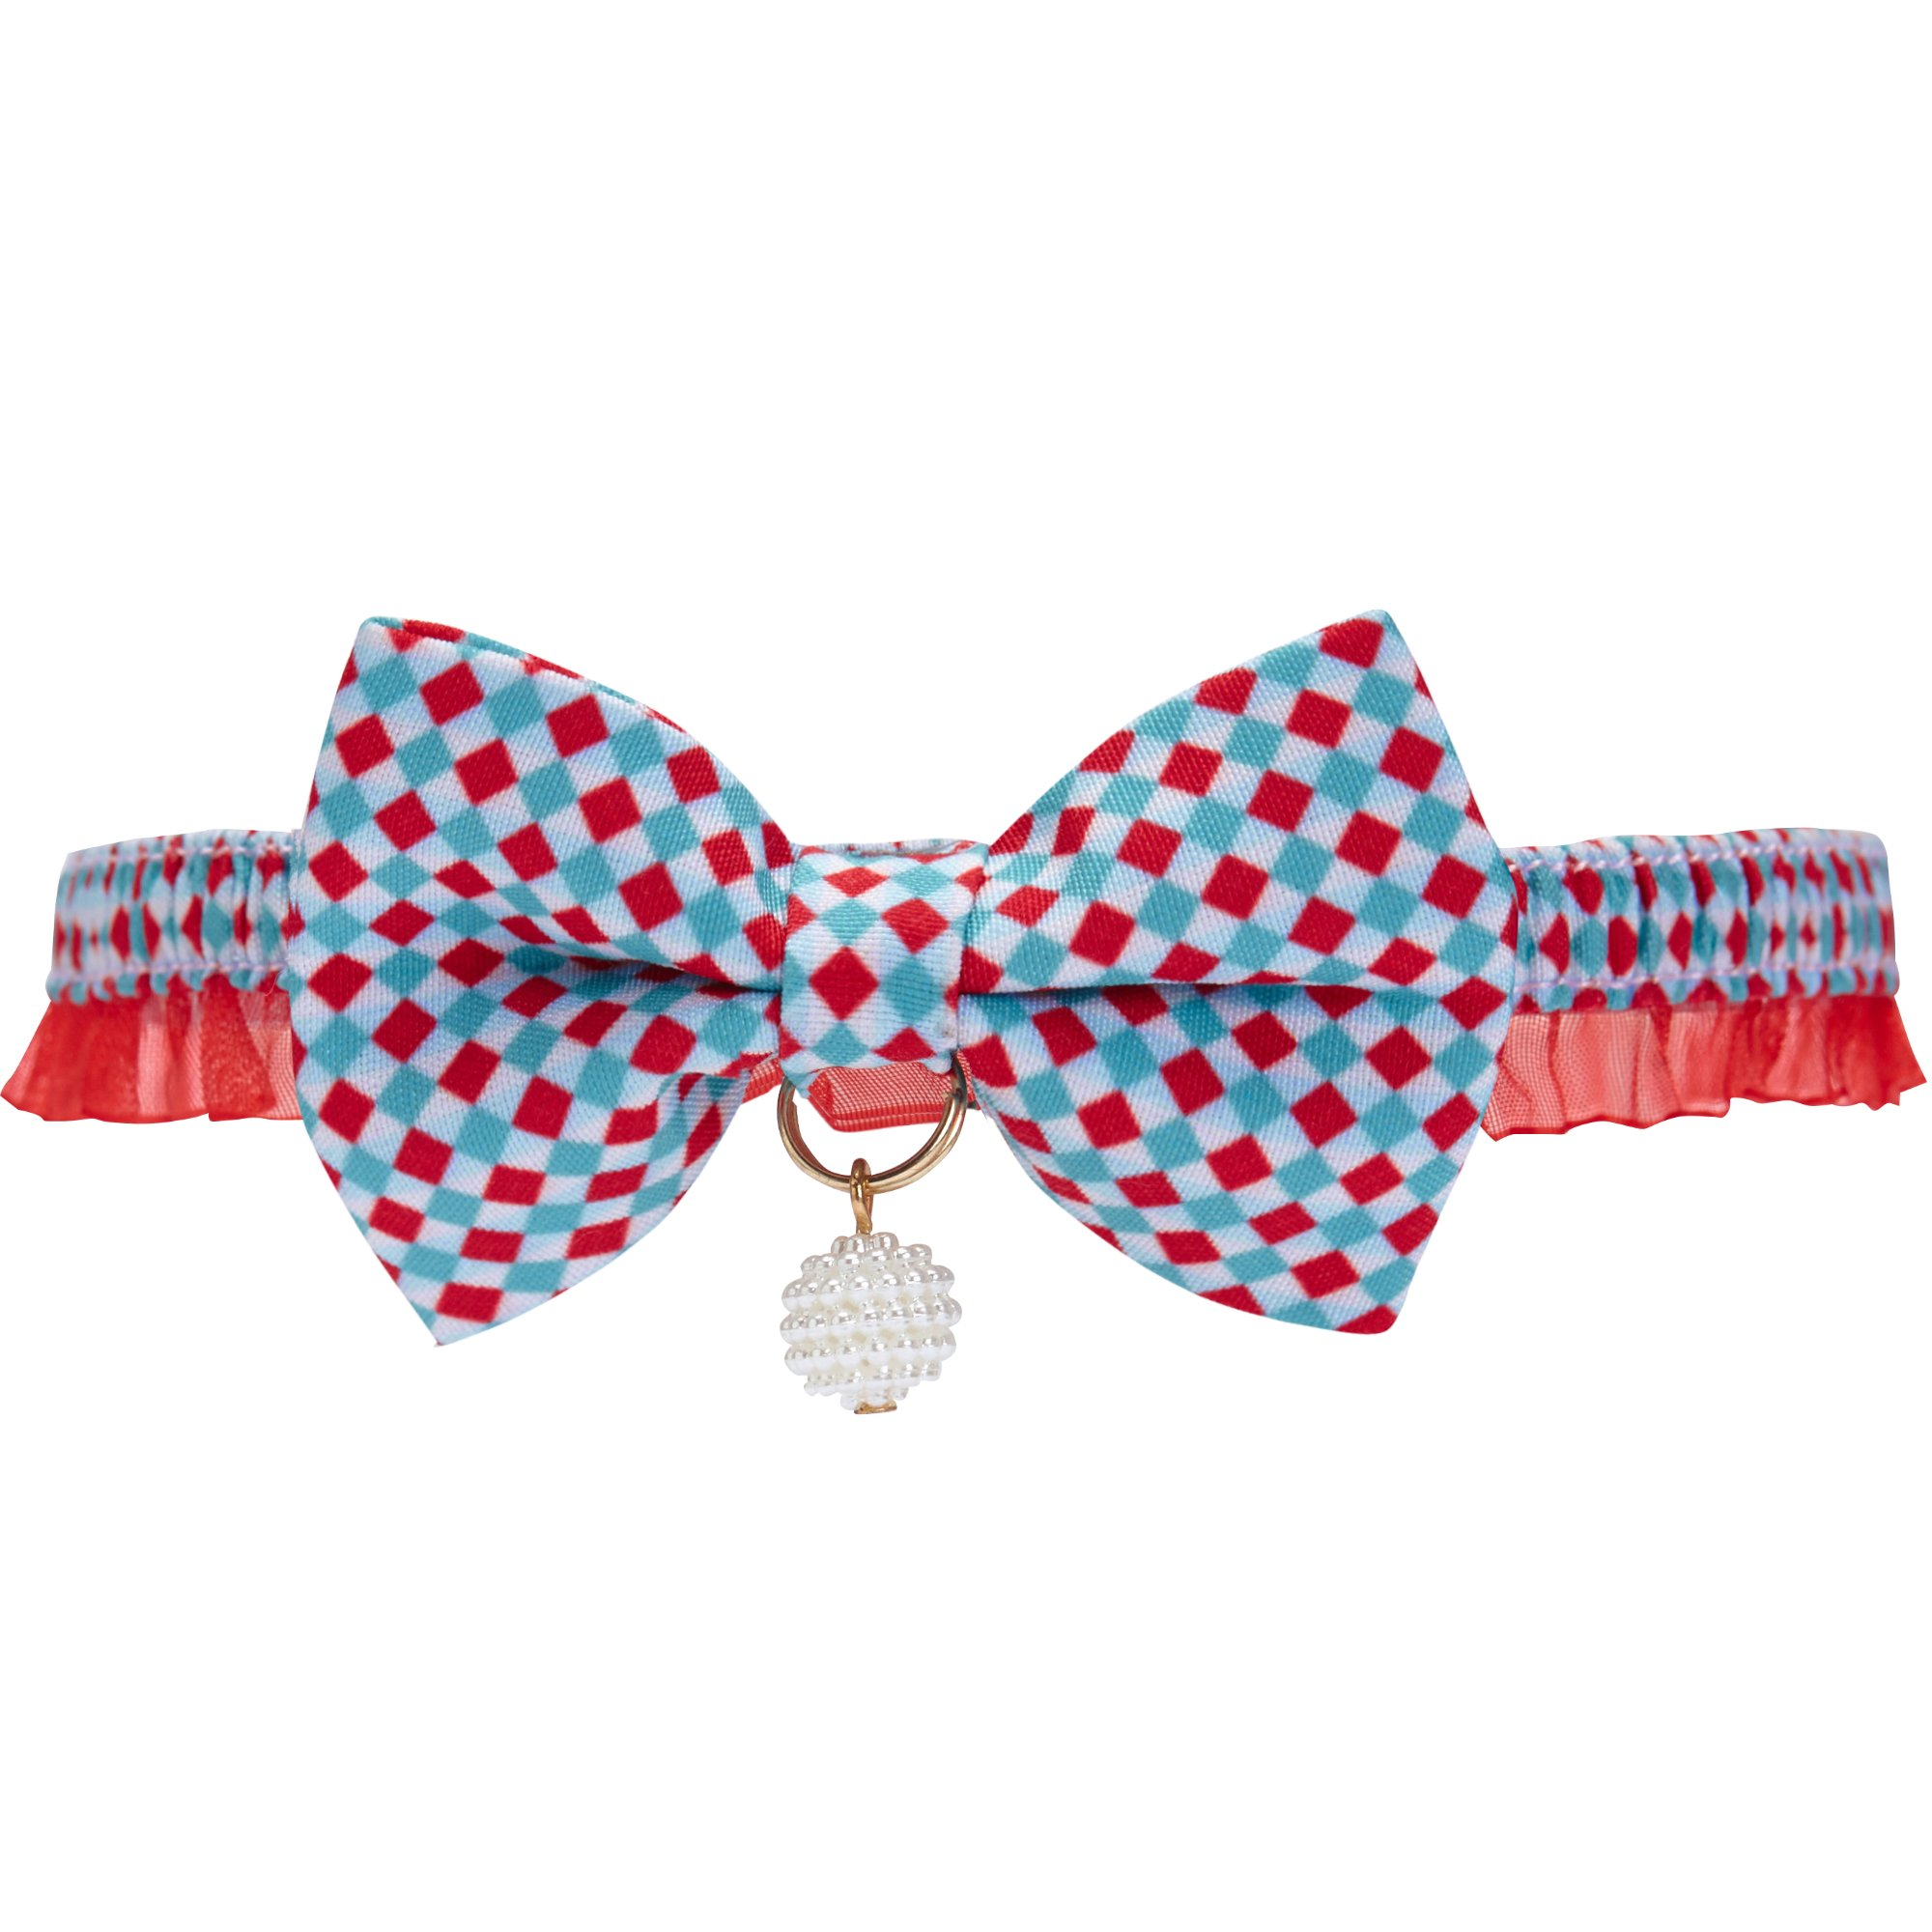 Blueberry Pet 18 Designs Two Tone Checker Breakaway Bowtie Cat Collar Lace Choker Necklace with Handmade Bow Tie and Pearl Charm, Safety Elastic Stretch Collar for Cats, Neck